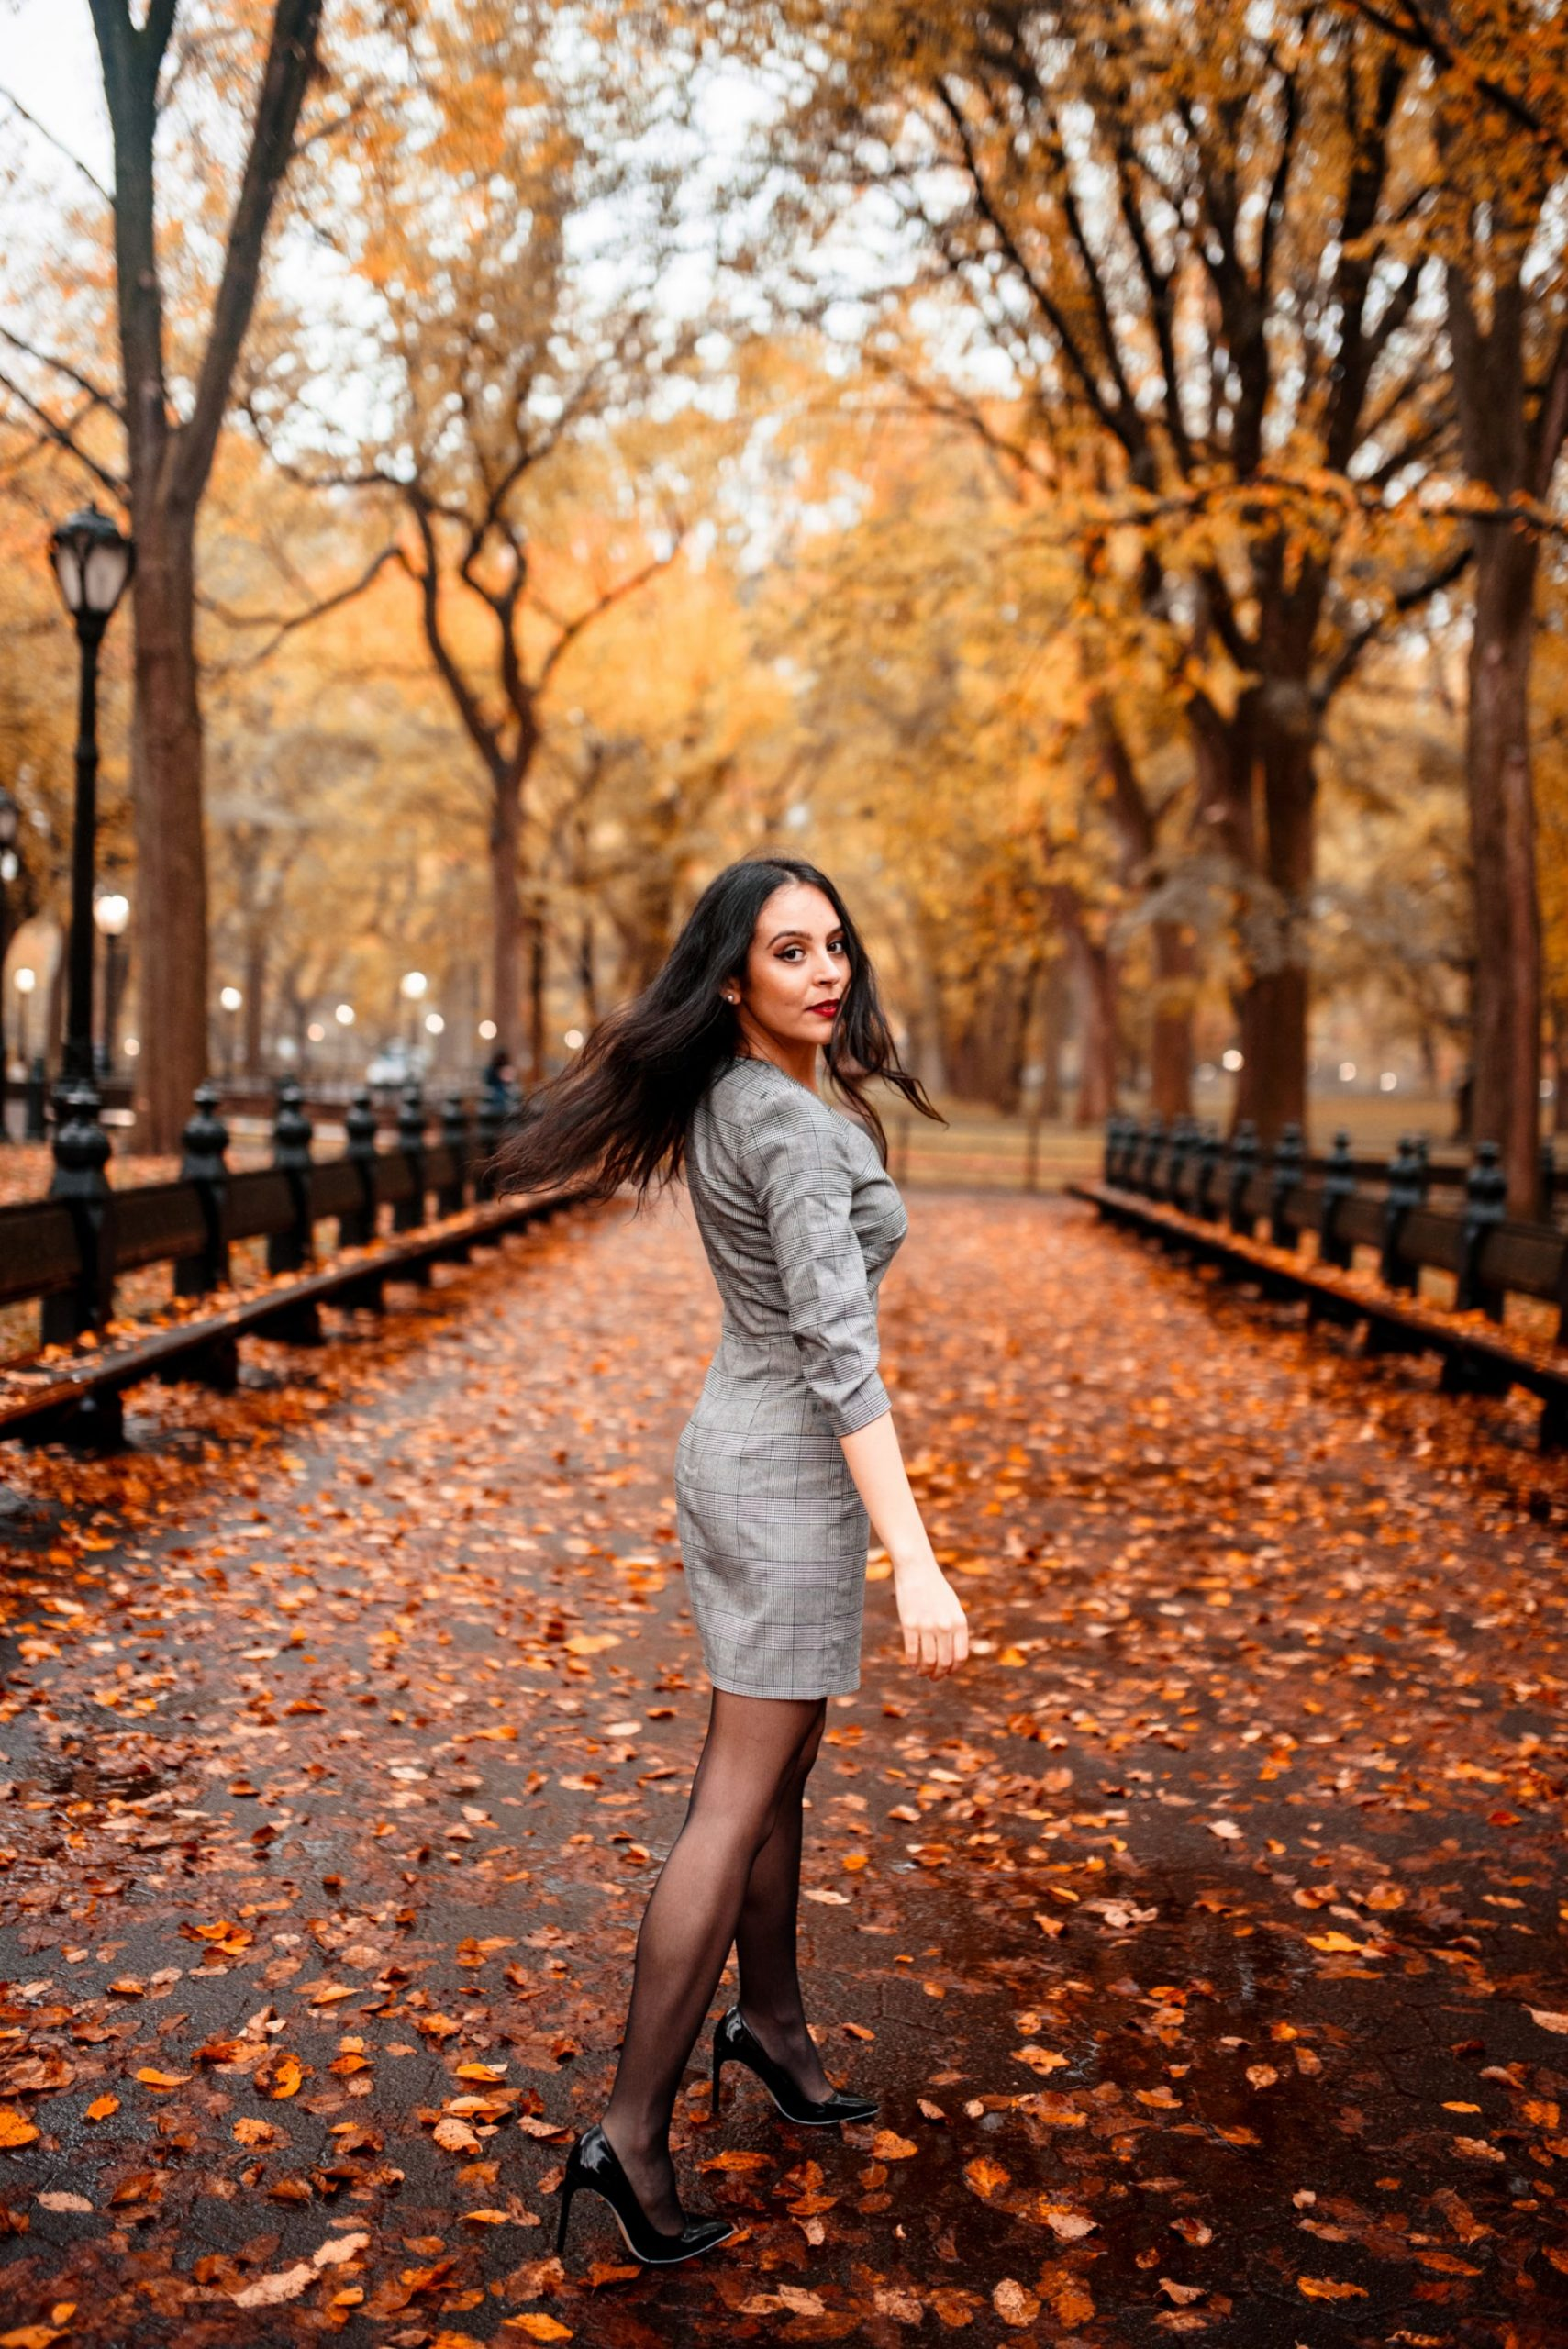 Central Park The Mall fall NYC photoshoot location